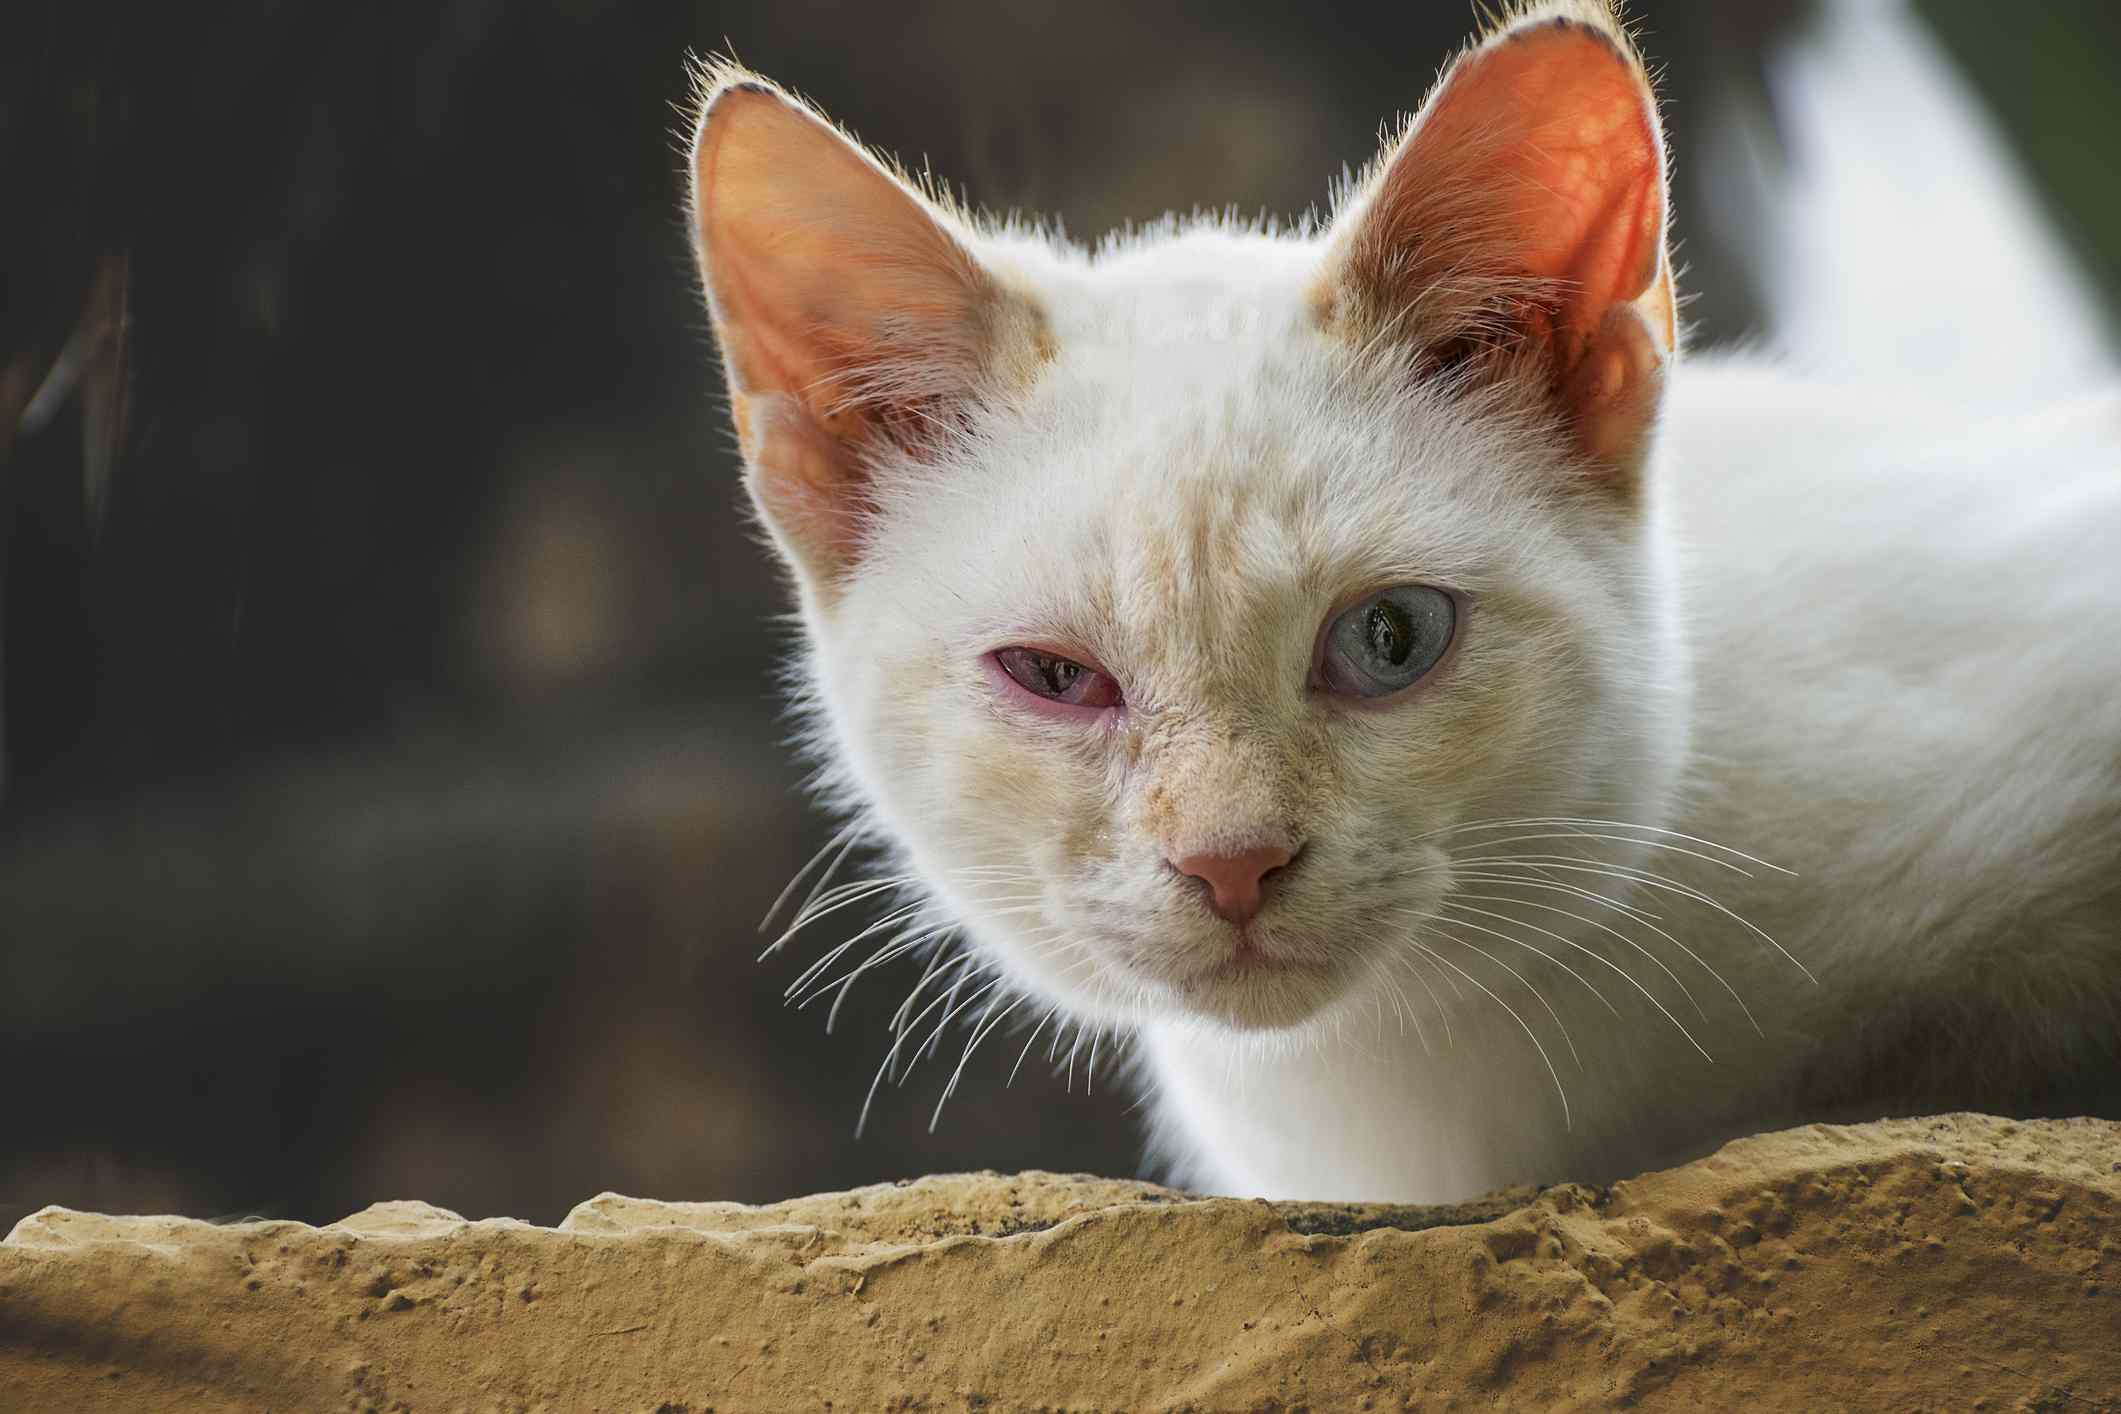 White cat with conjunctivitis squinting.